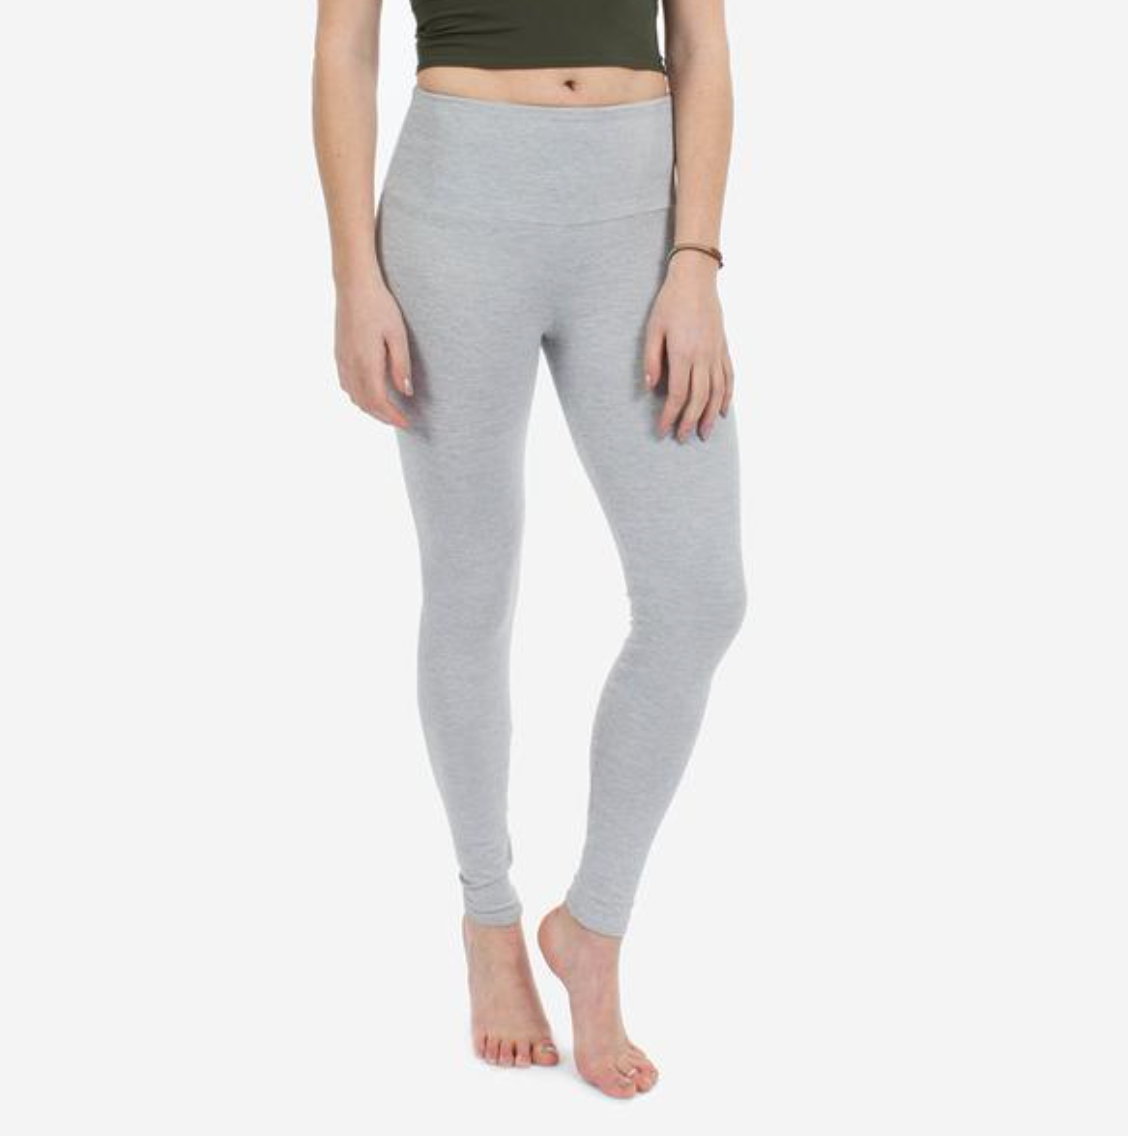 Sample Rack - Perfect Fit Yoga Pants - XL